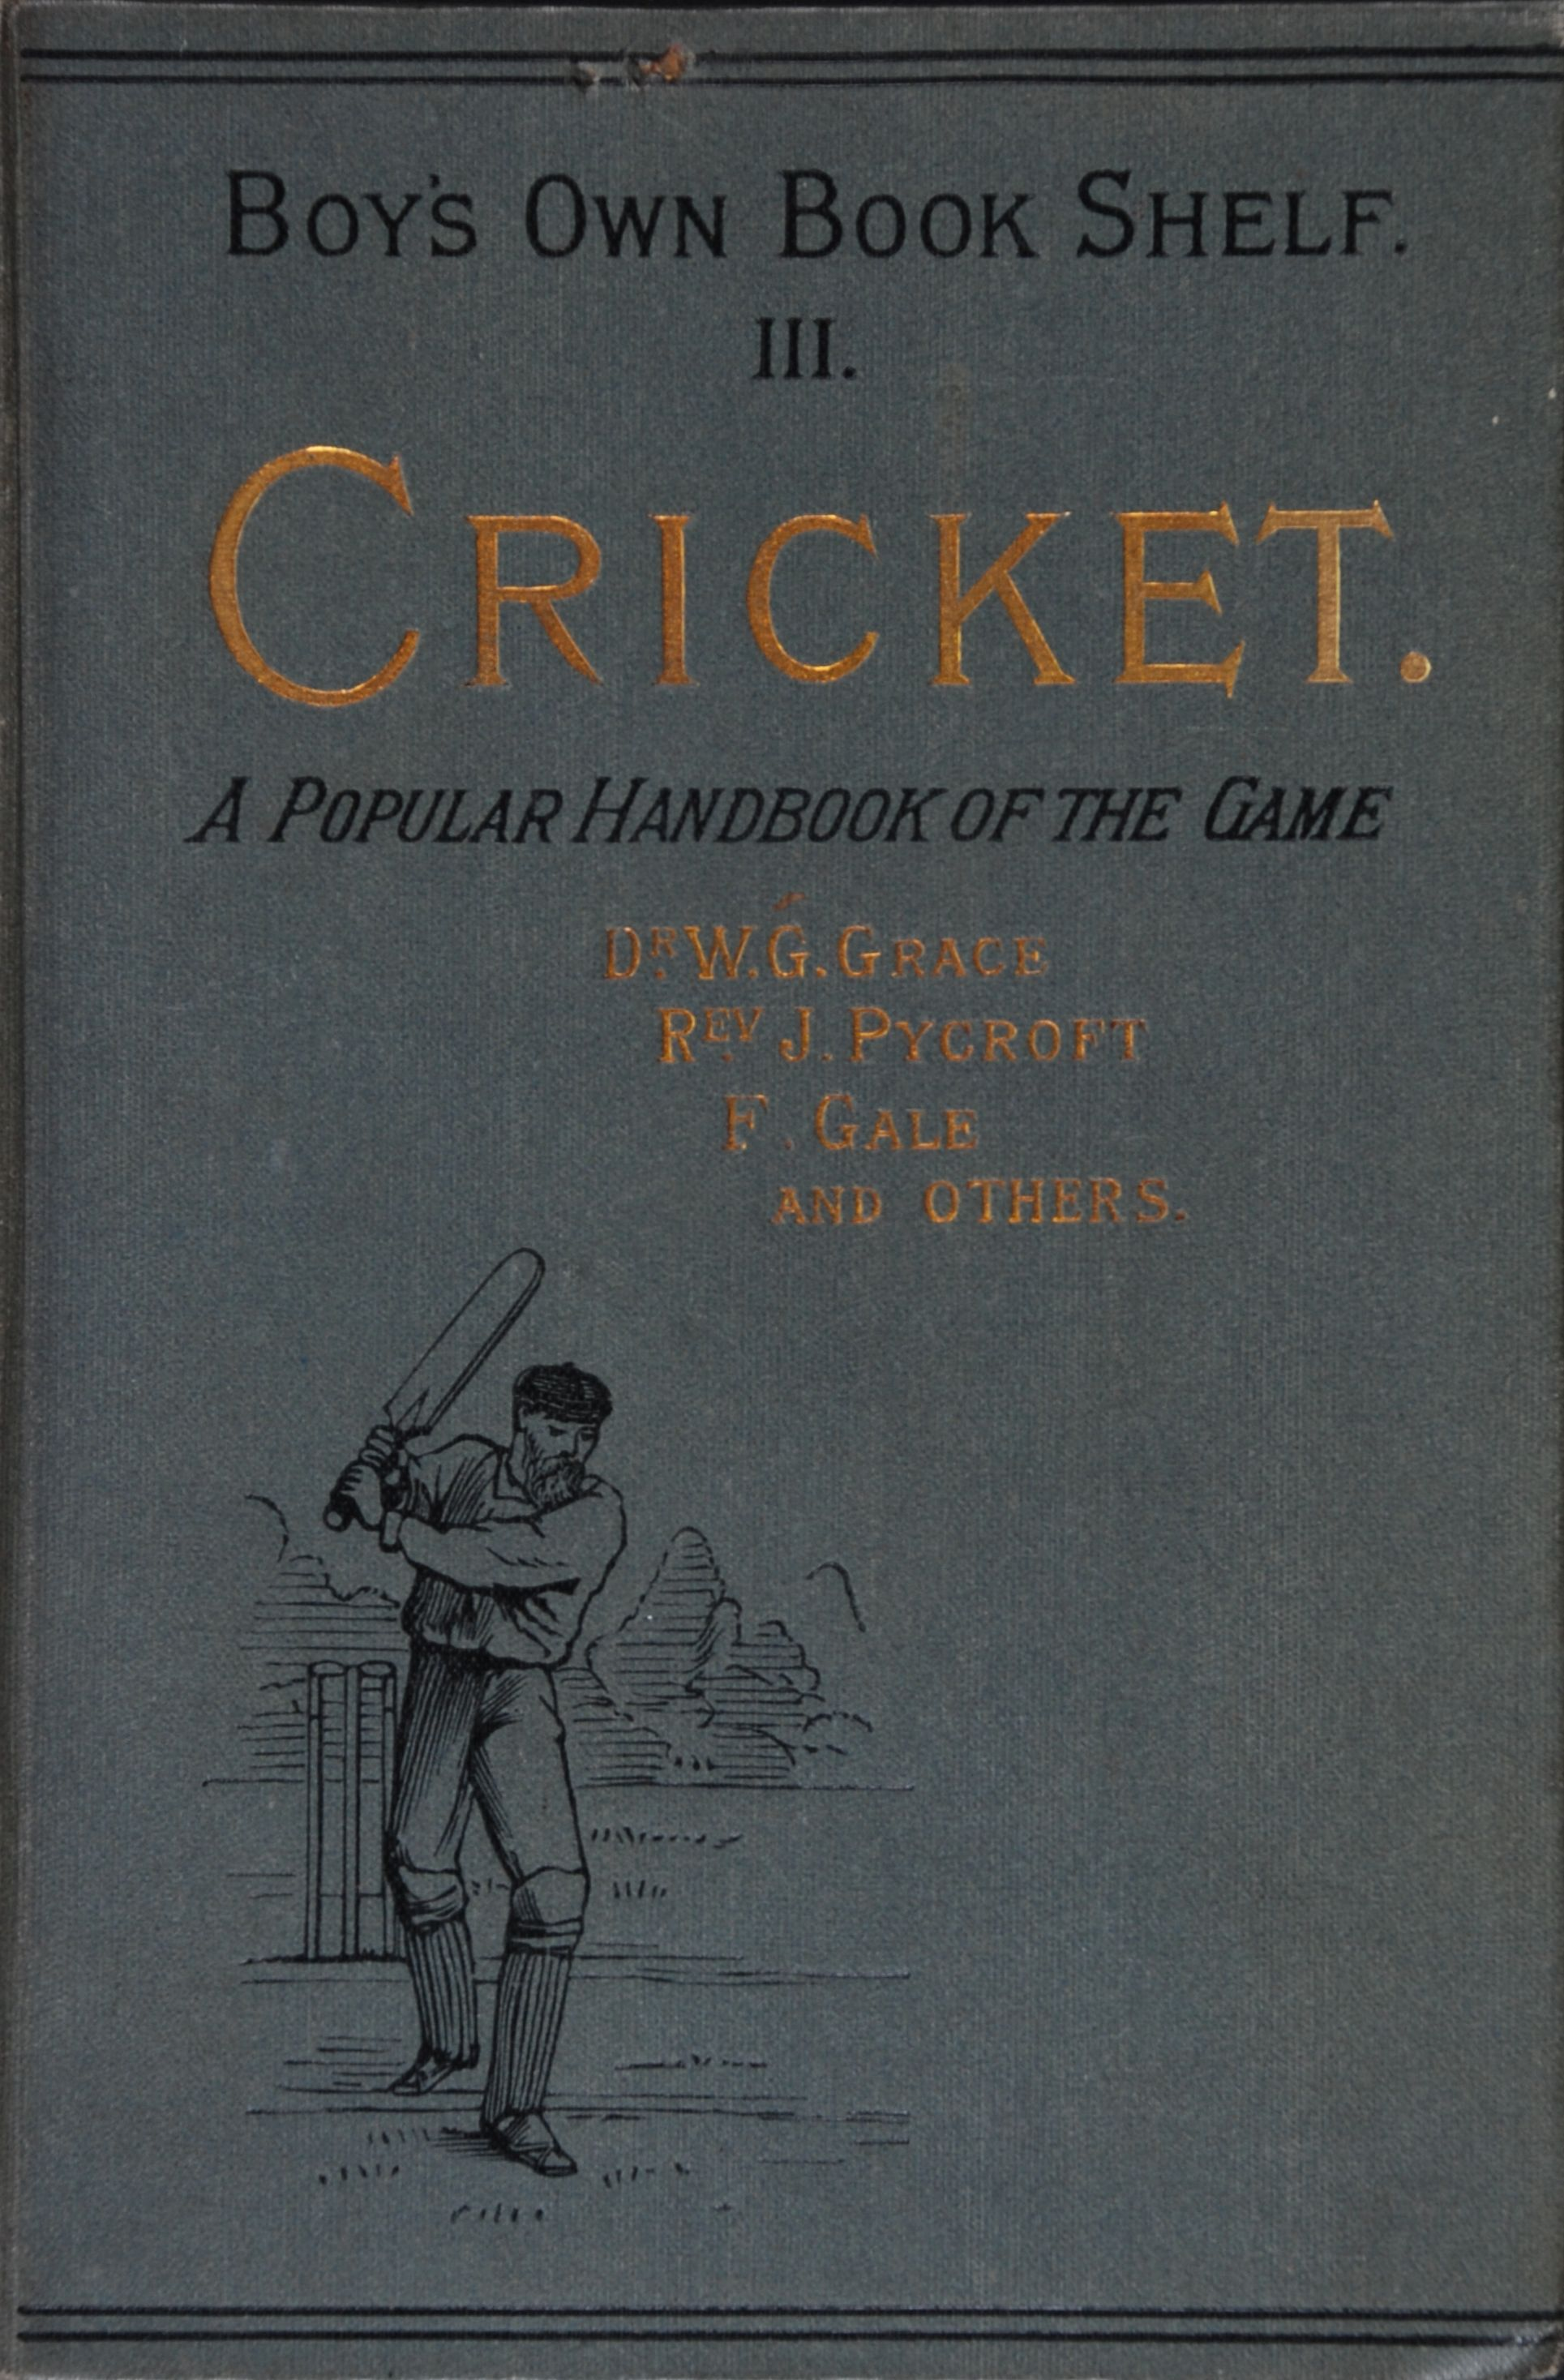 G A Hutchison (ed.). Cricket: a popular handbook of the game.  London: Religious Tract Society, [n.d.]